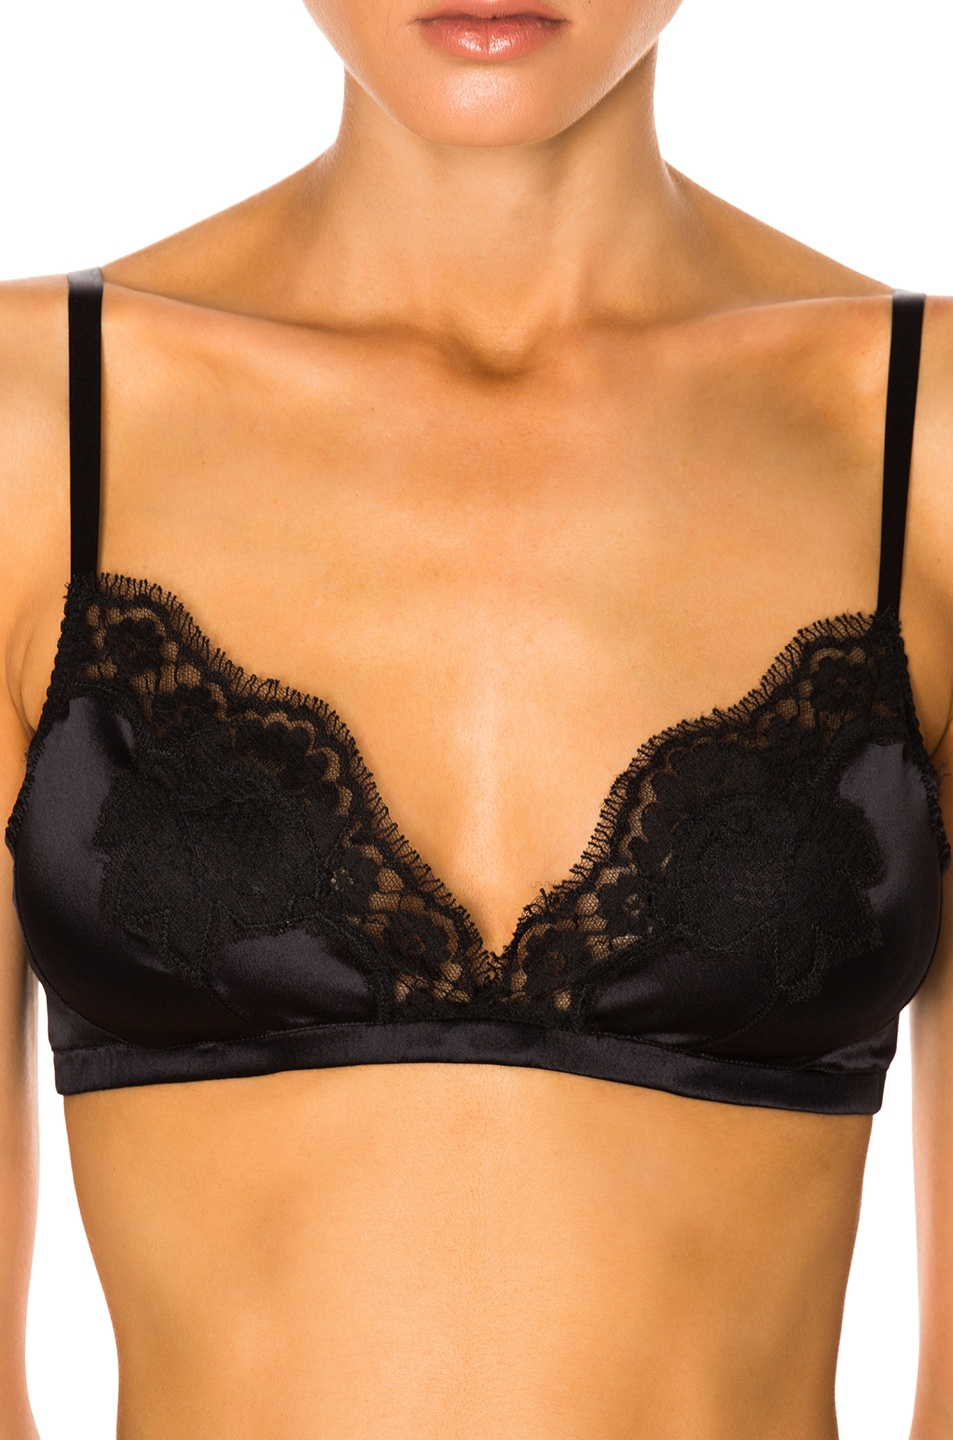 DOLCE & GABBANA LACE-TRIMMED SILK-BLEND TRIANGLE BRA, BLACK